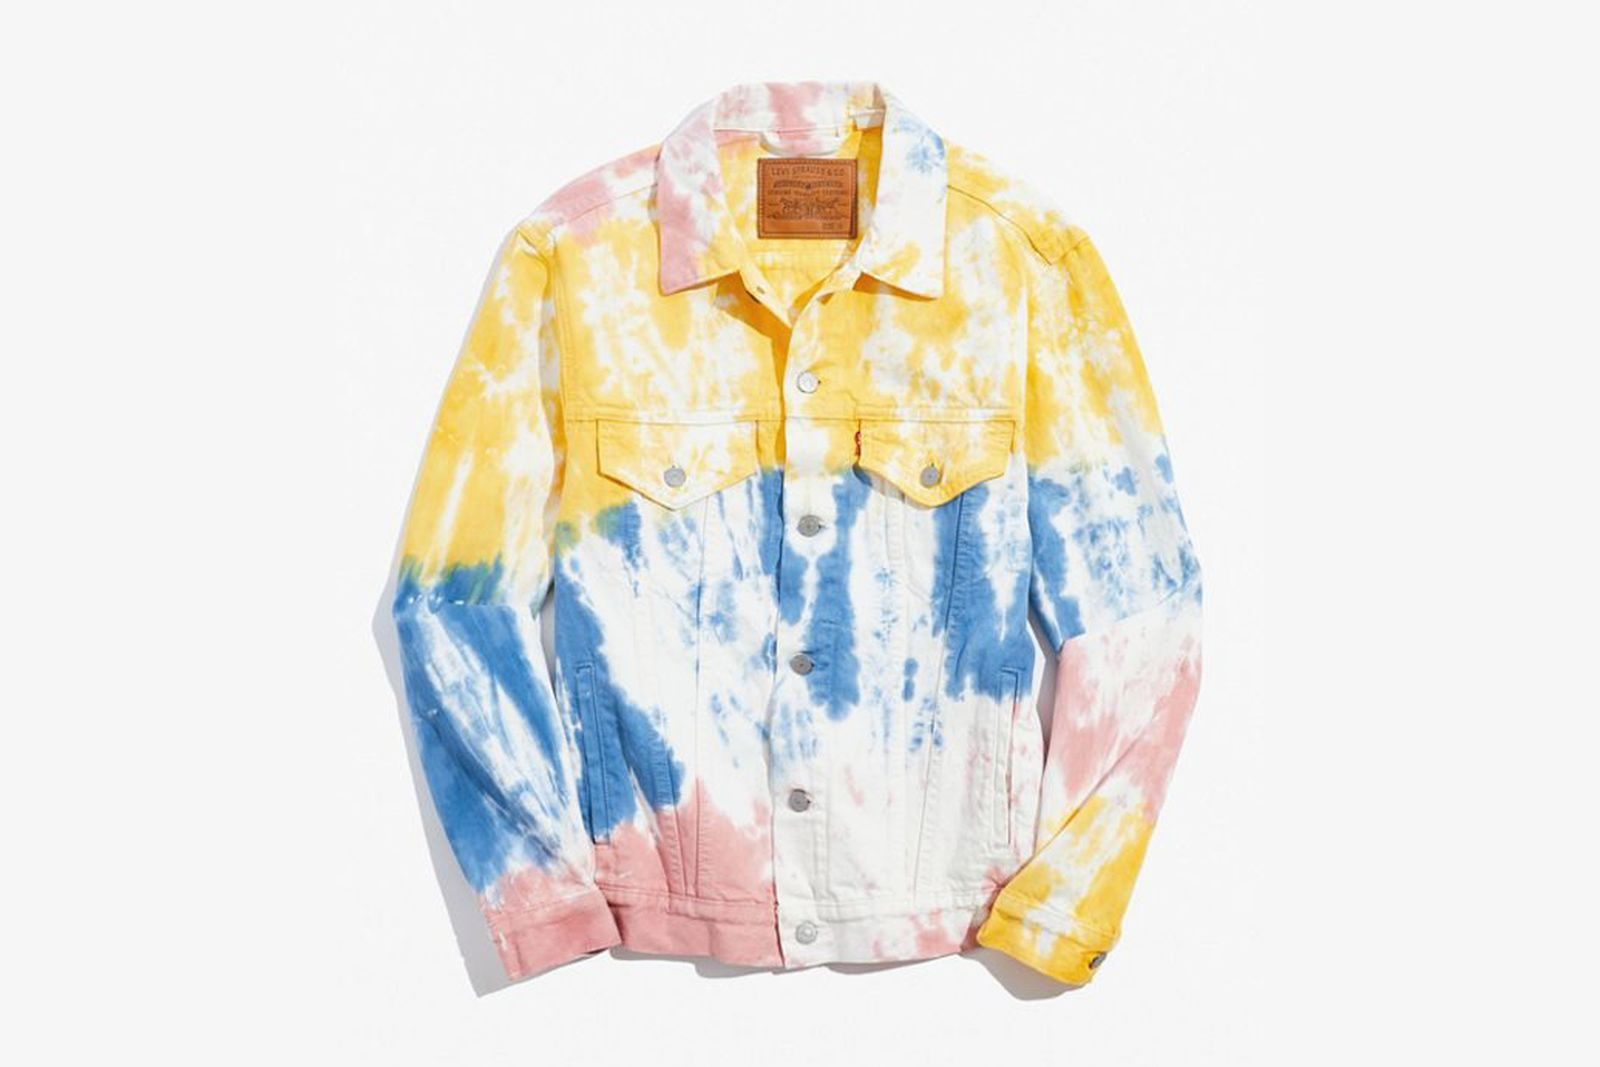 Levi's Tie-Dye Denim Jacket in Yellow, Blue, and Pink